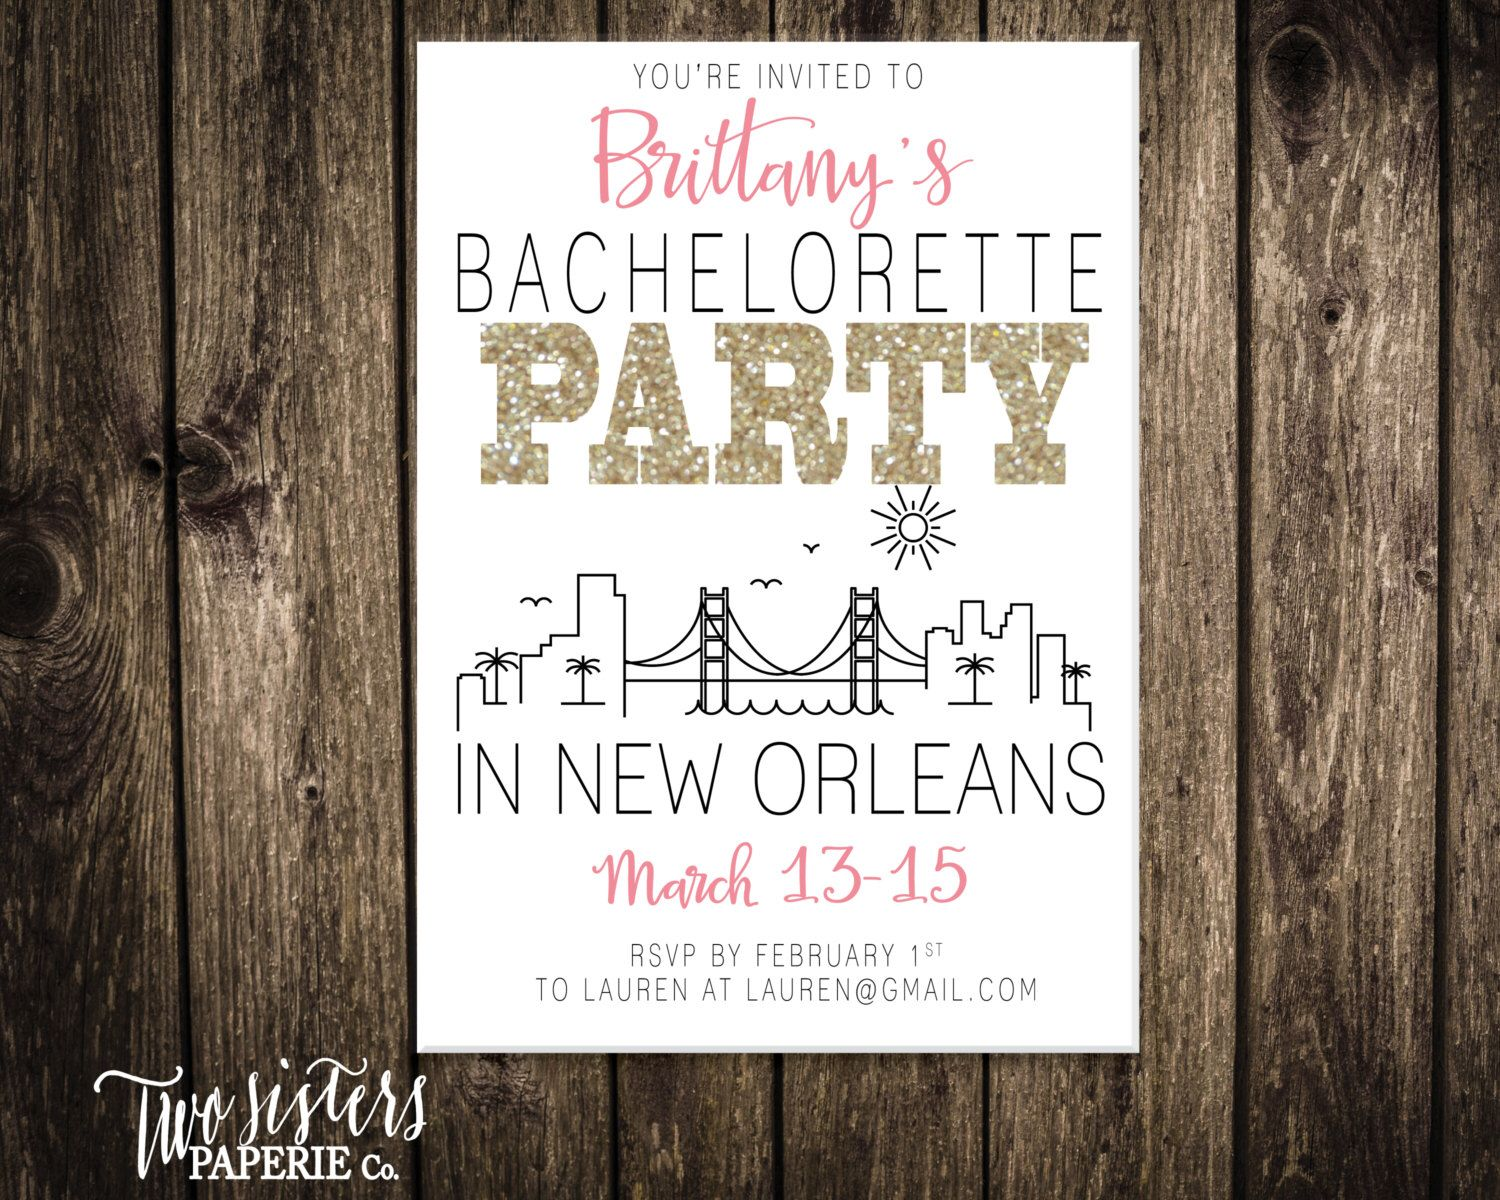 New Orleans Bachelorette Party Invitation and Itinerary - NEW ...